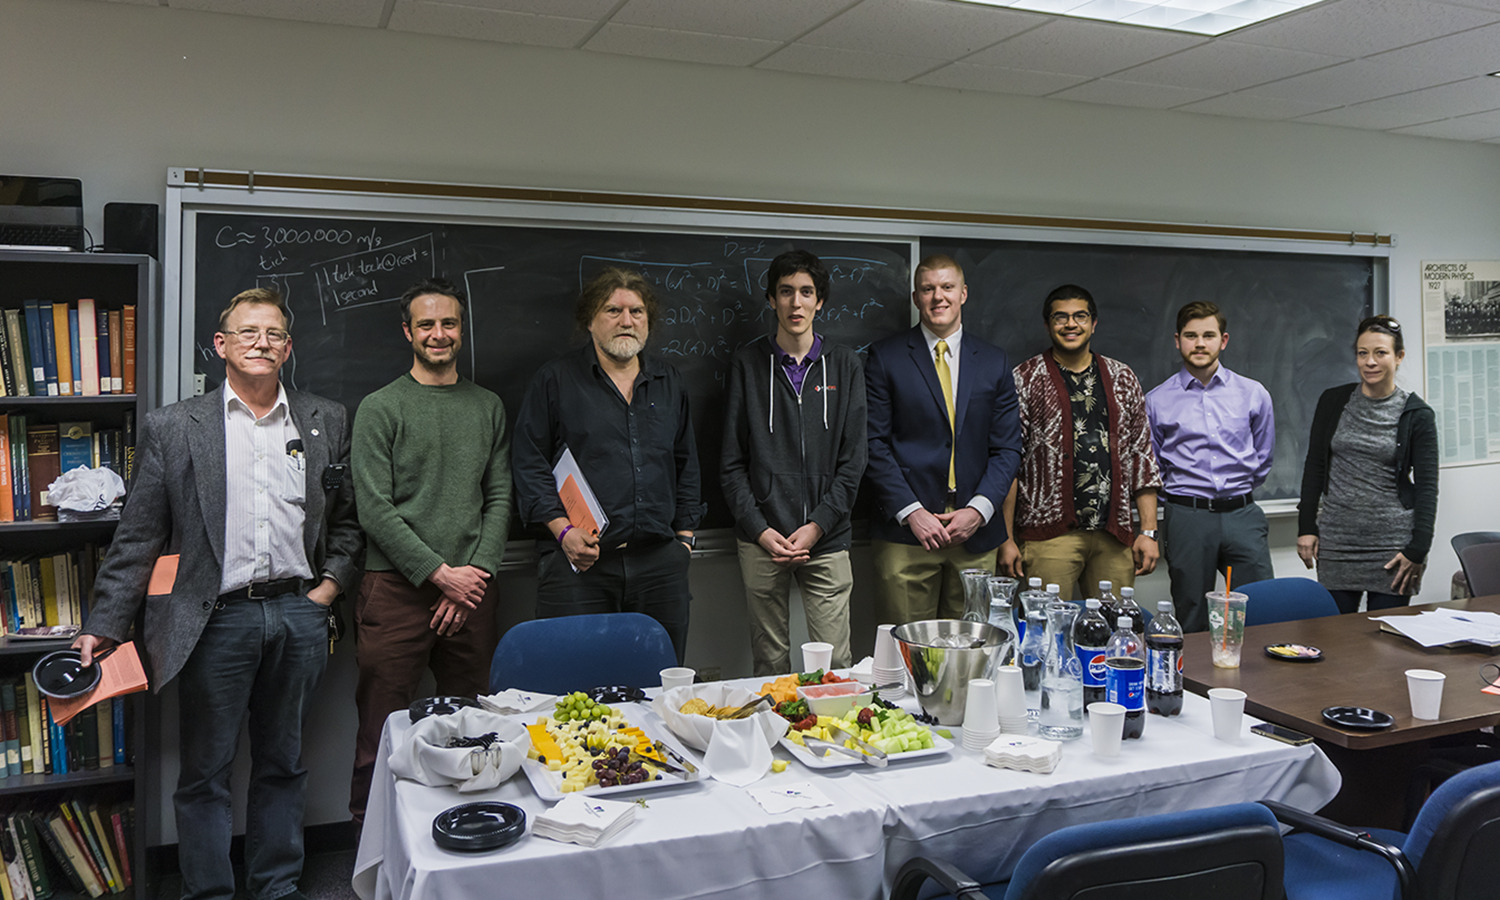 Associate Professor of Physics Ted Allen, Assistant Professor of Psychology Daniel Graham, Associate Professor of Physics Steven Penn, Max Brodheim 'X, AJ McFarlane 'X, Shivam Tewari '18, James Monaco '20 and Associate Professor of English Melanie Conroy-Goldman.